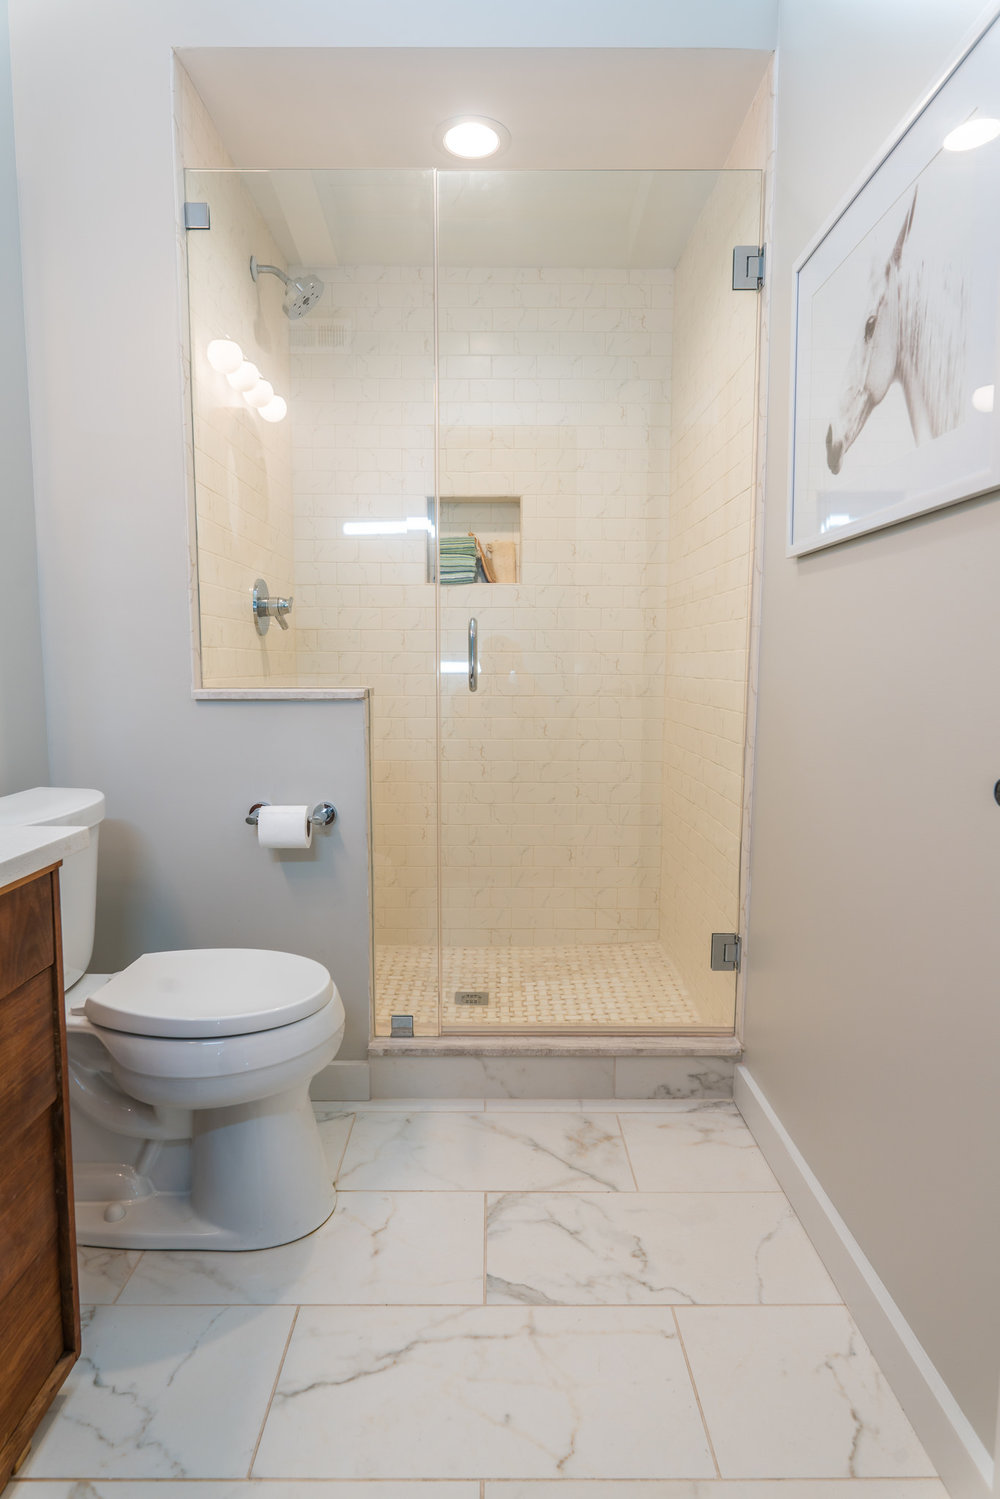 Hall bath with walk-in shower